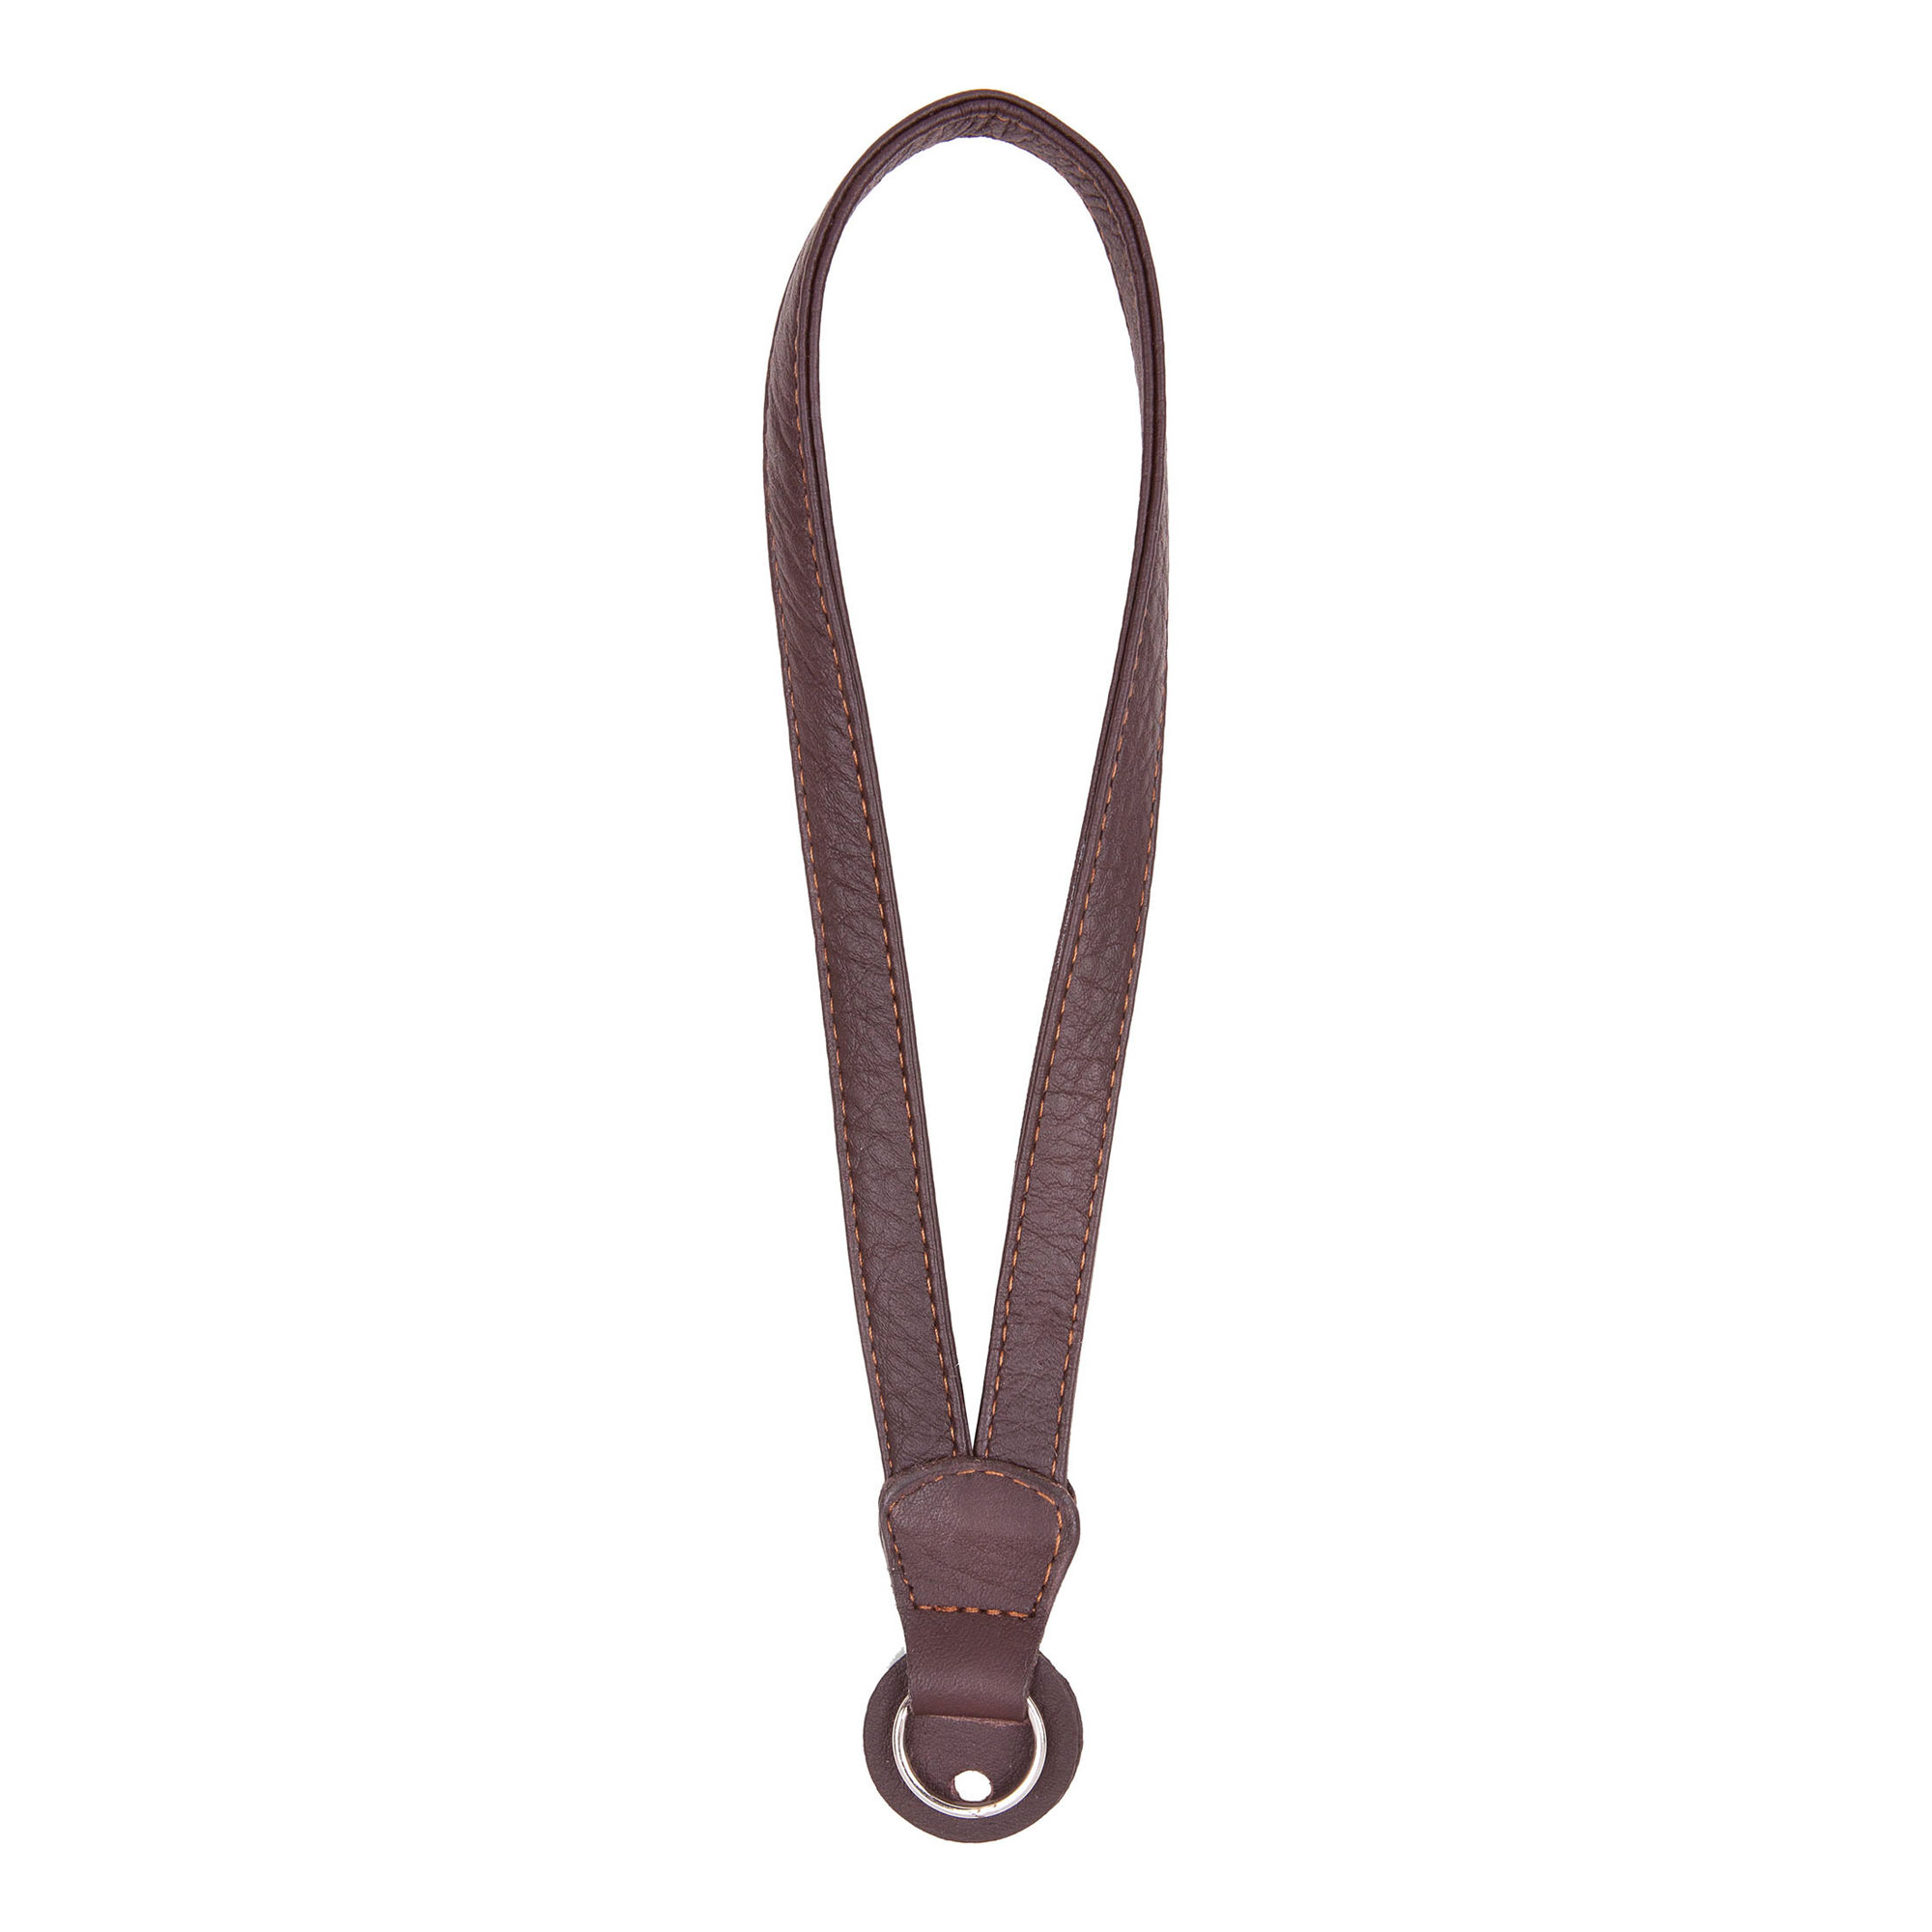 Image of Cecilia Gallery Leather Camera Wrist Strap with Ring Tethering (Brown)